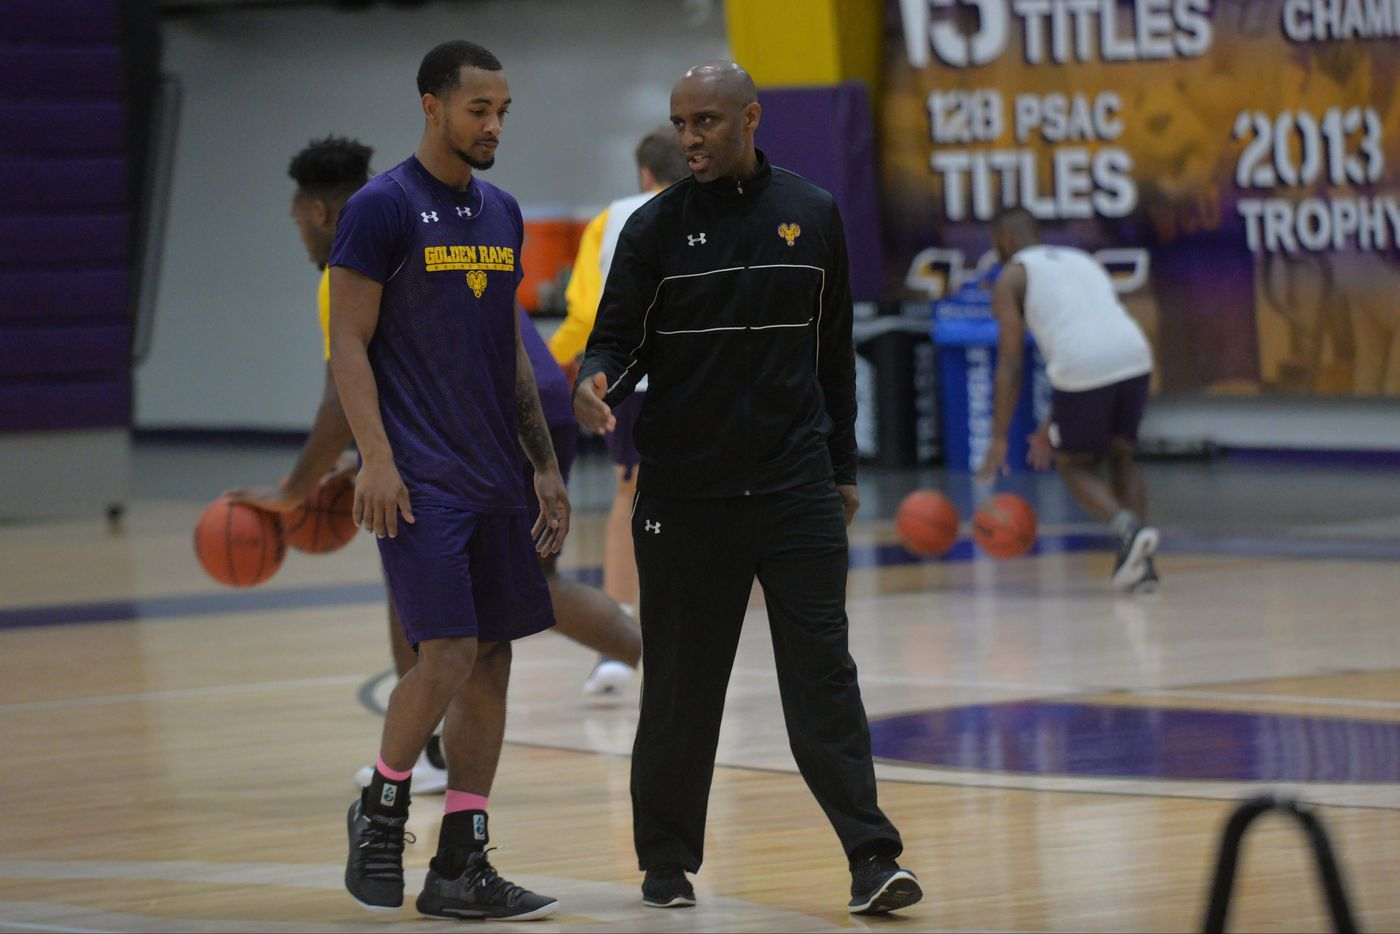 West Chester basketball teams highlight local small-college landscape